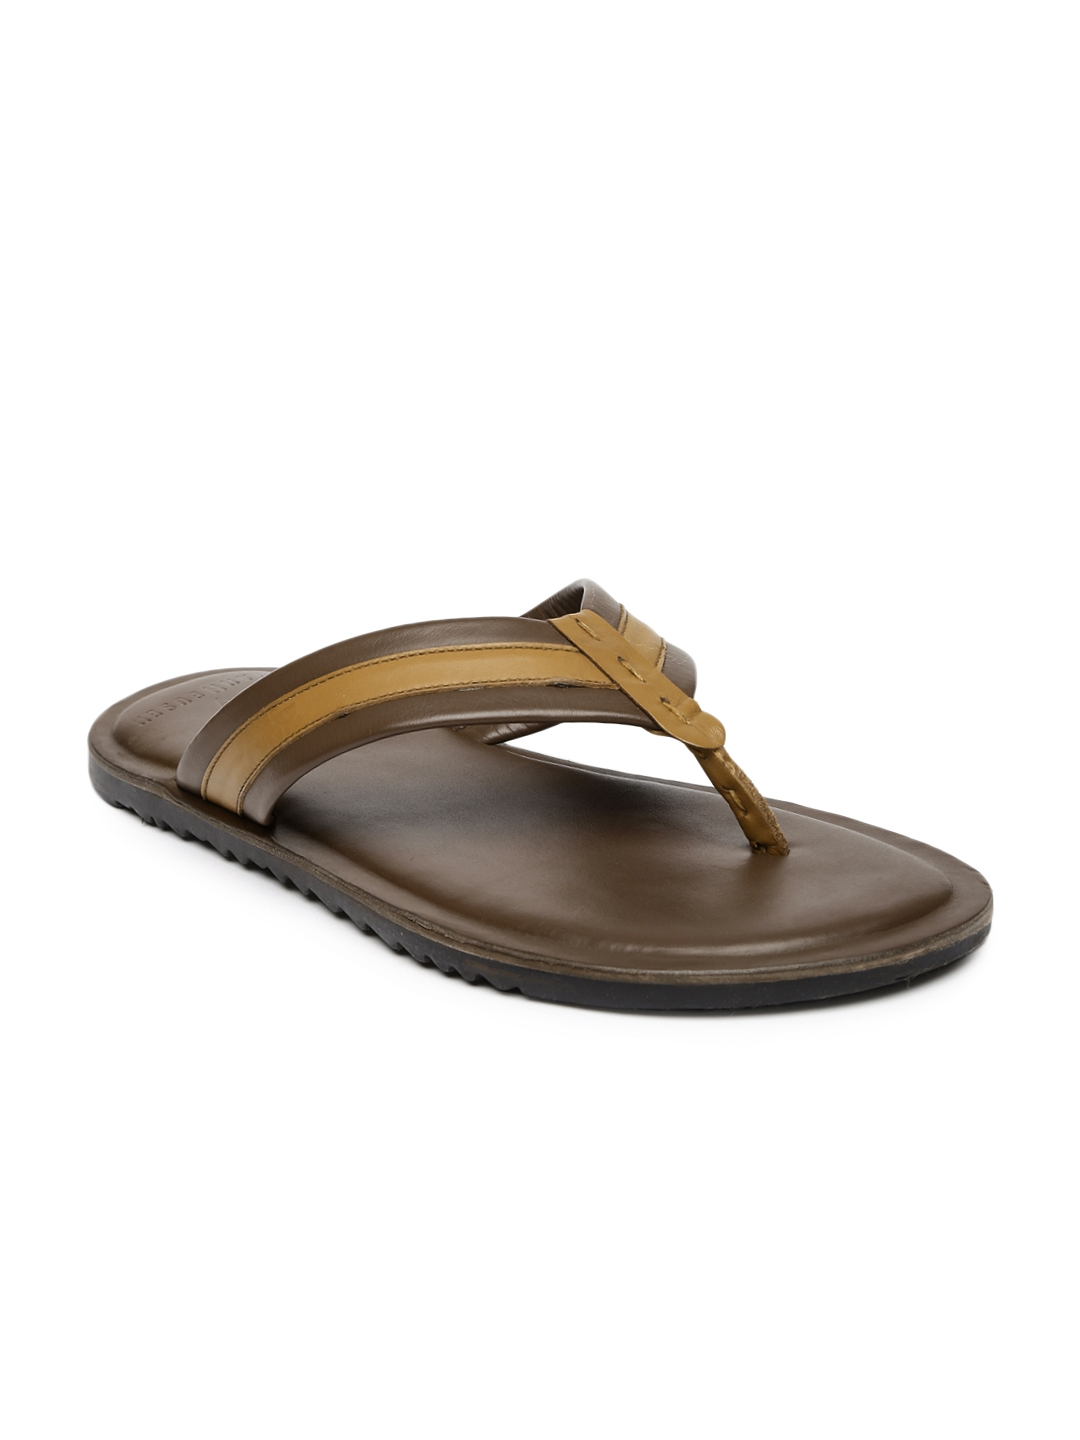 Buy Van Heusen Men Brown Leather Sandals - Sandals for Men 1218059 ... 95132ff98